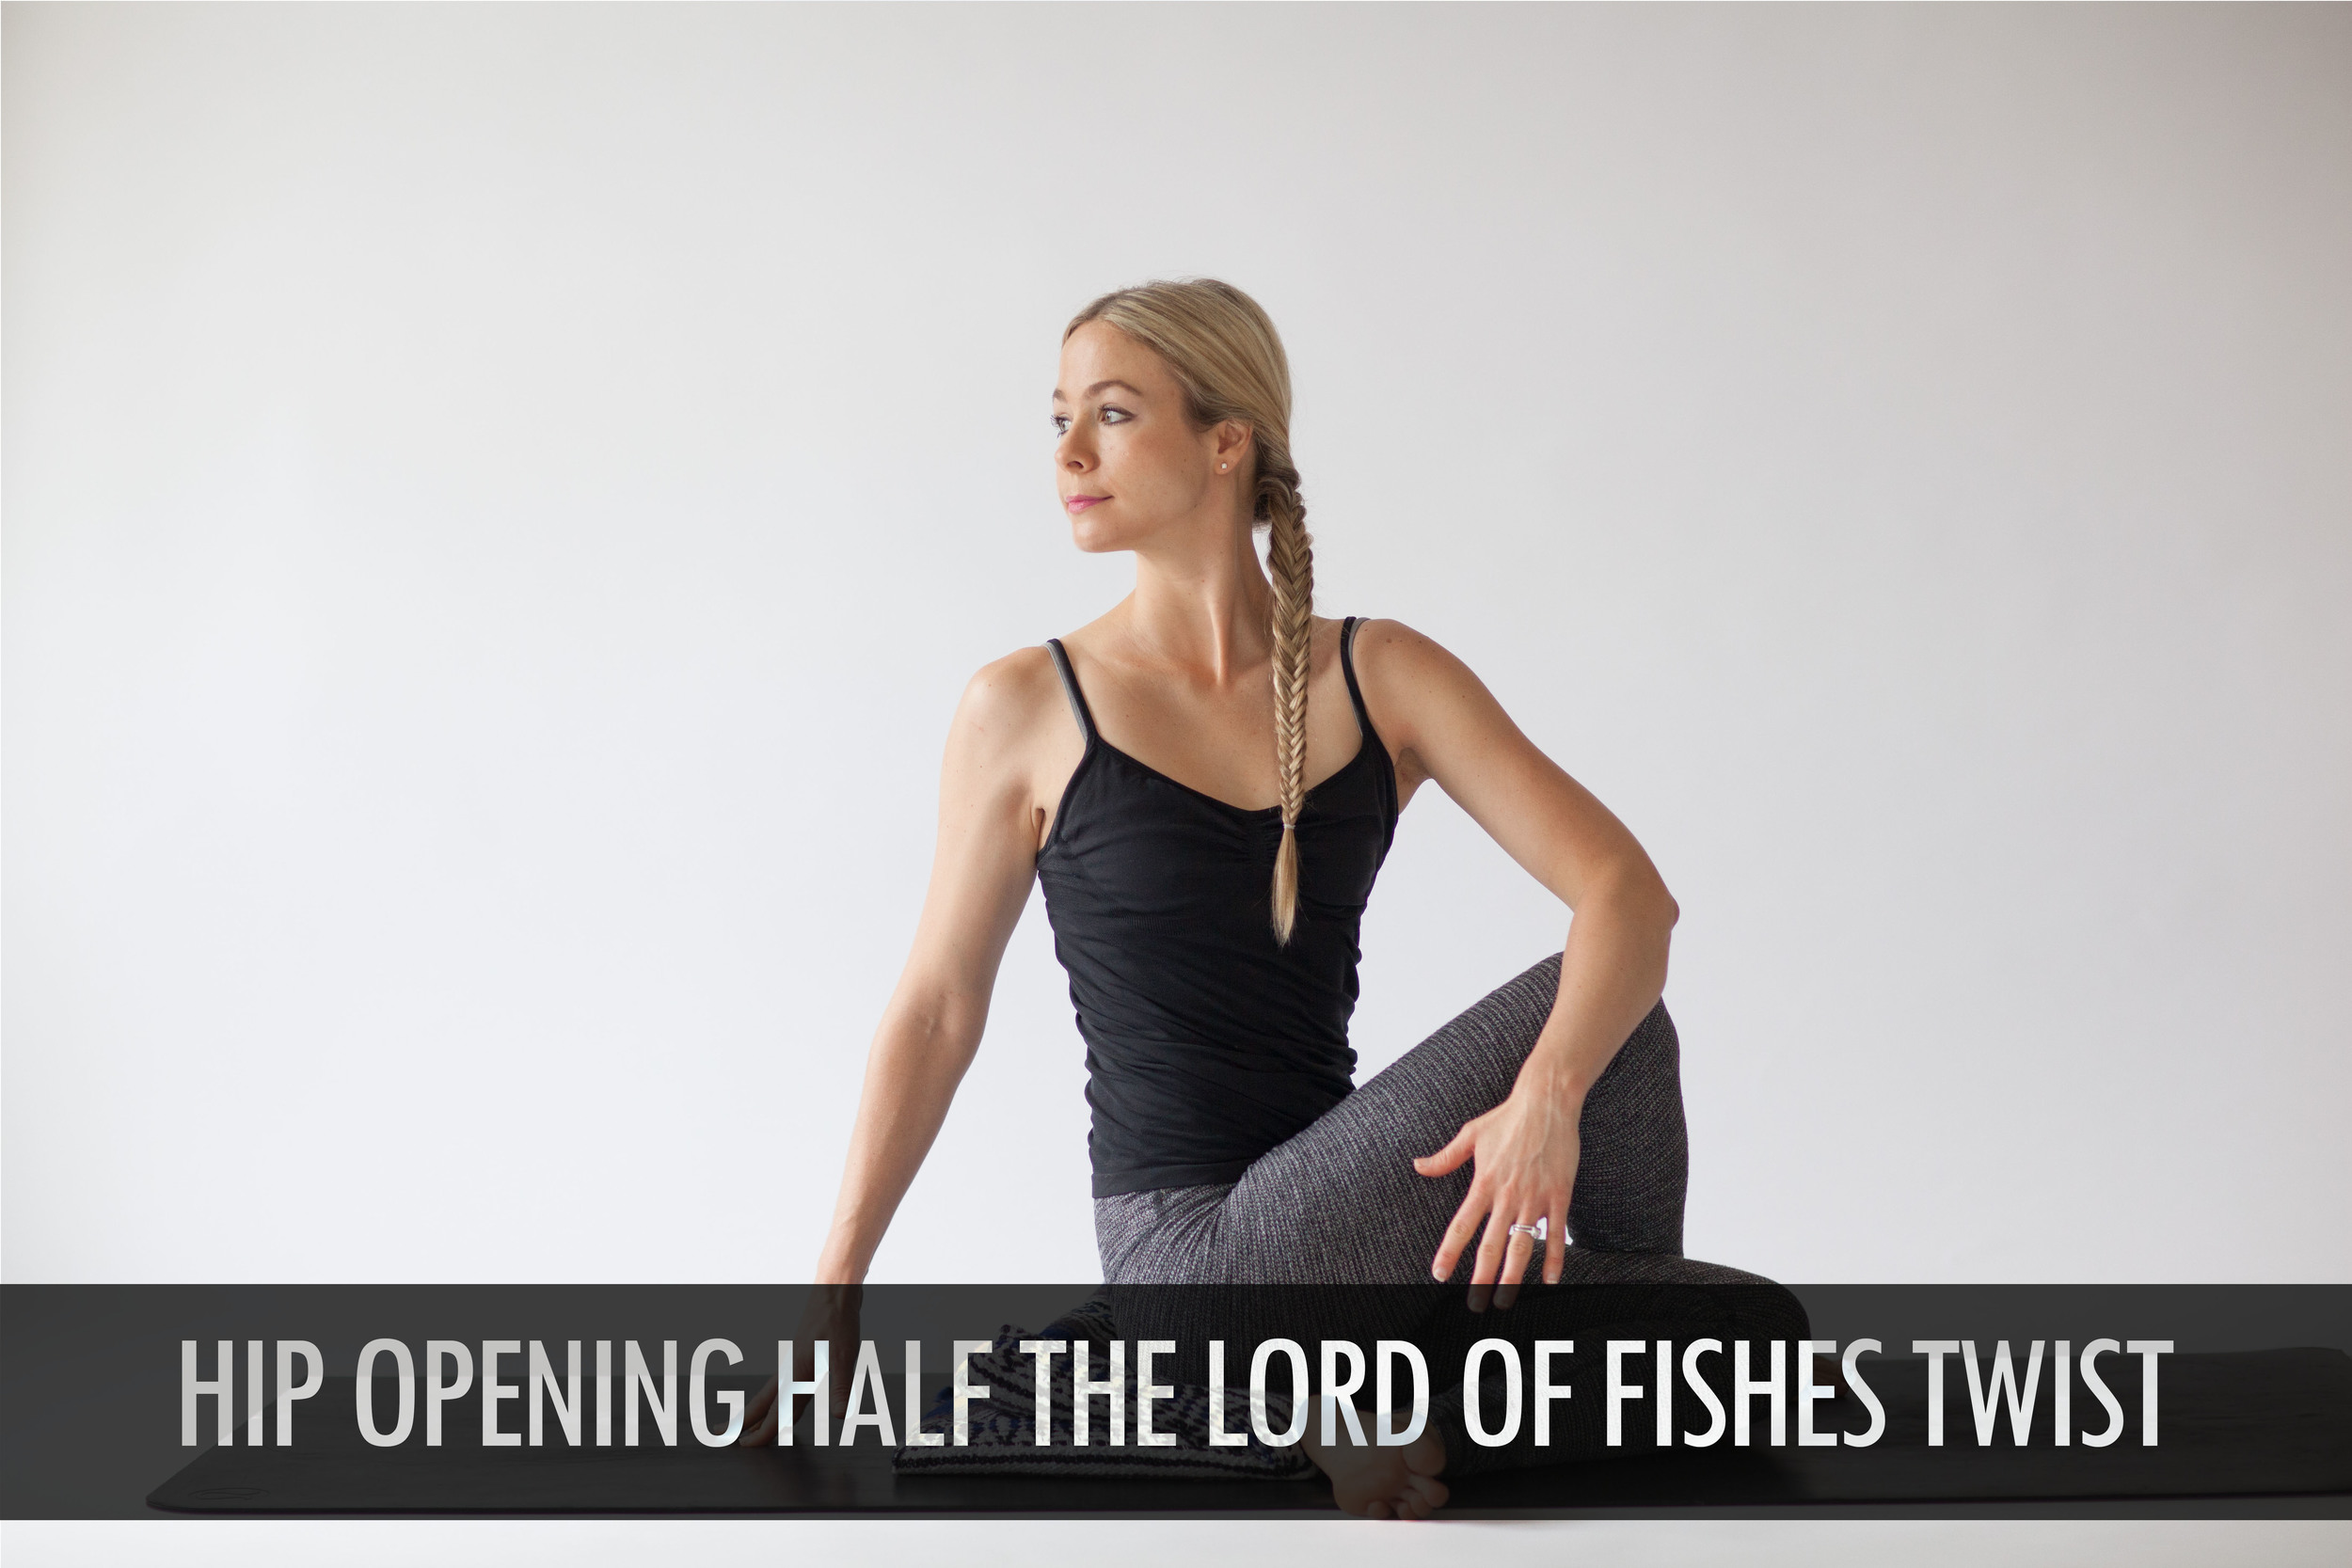 Hip Opening Half The Lord Of Fishes Twist.jpg